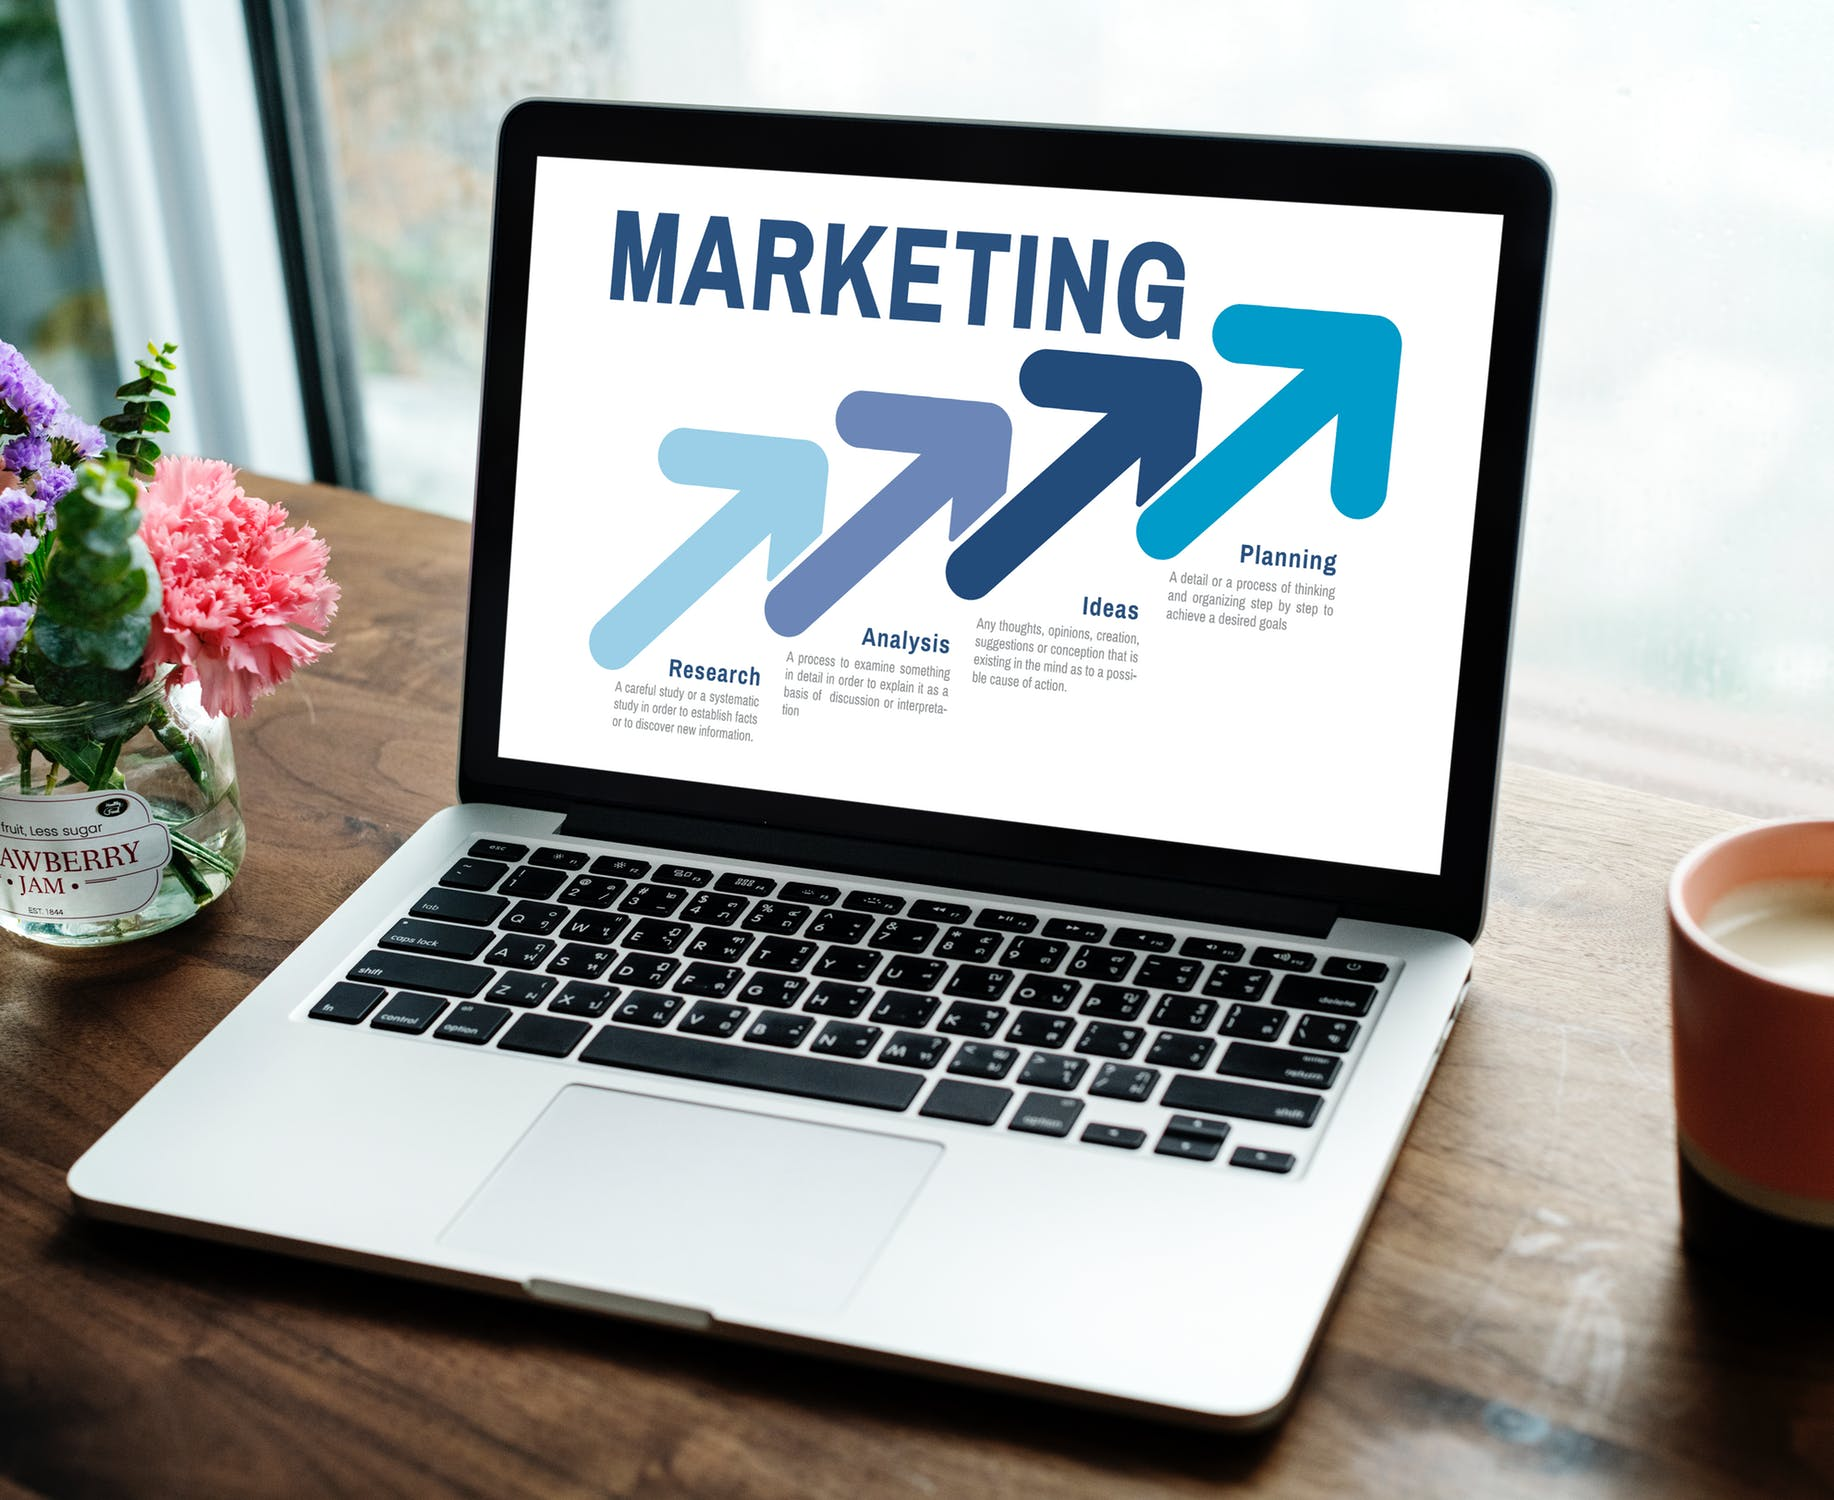 5 things you should know before starting a career in marketing